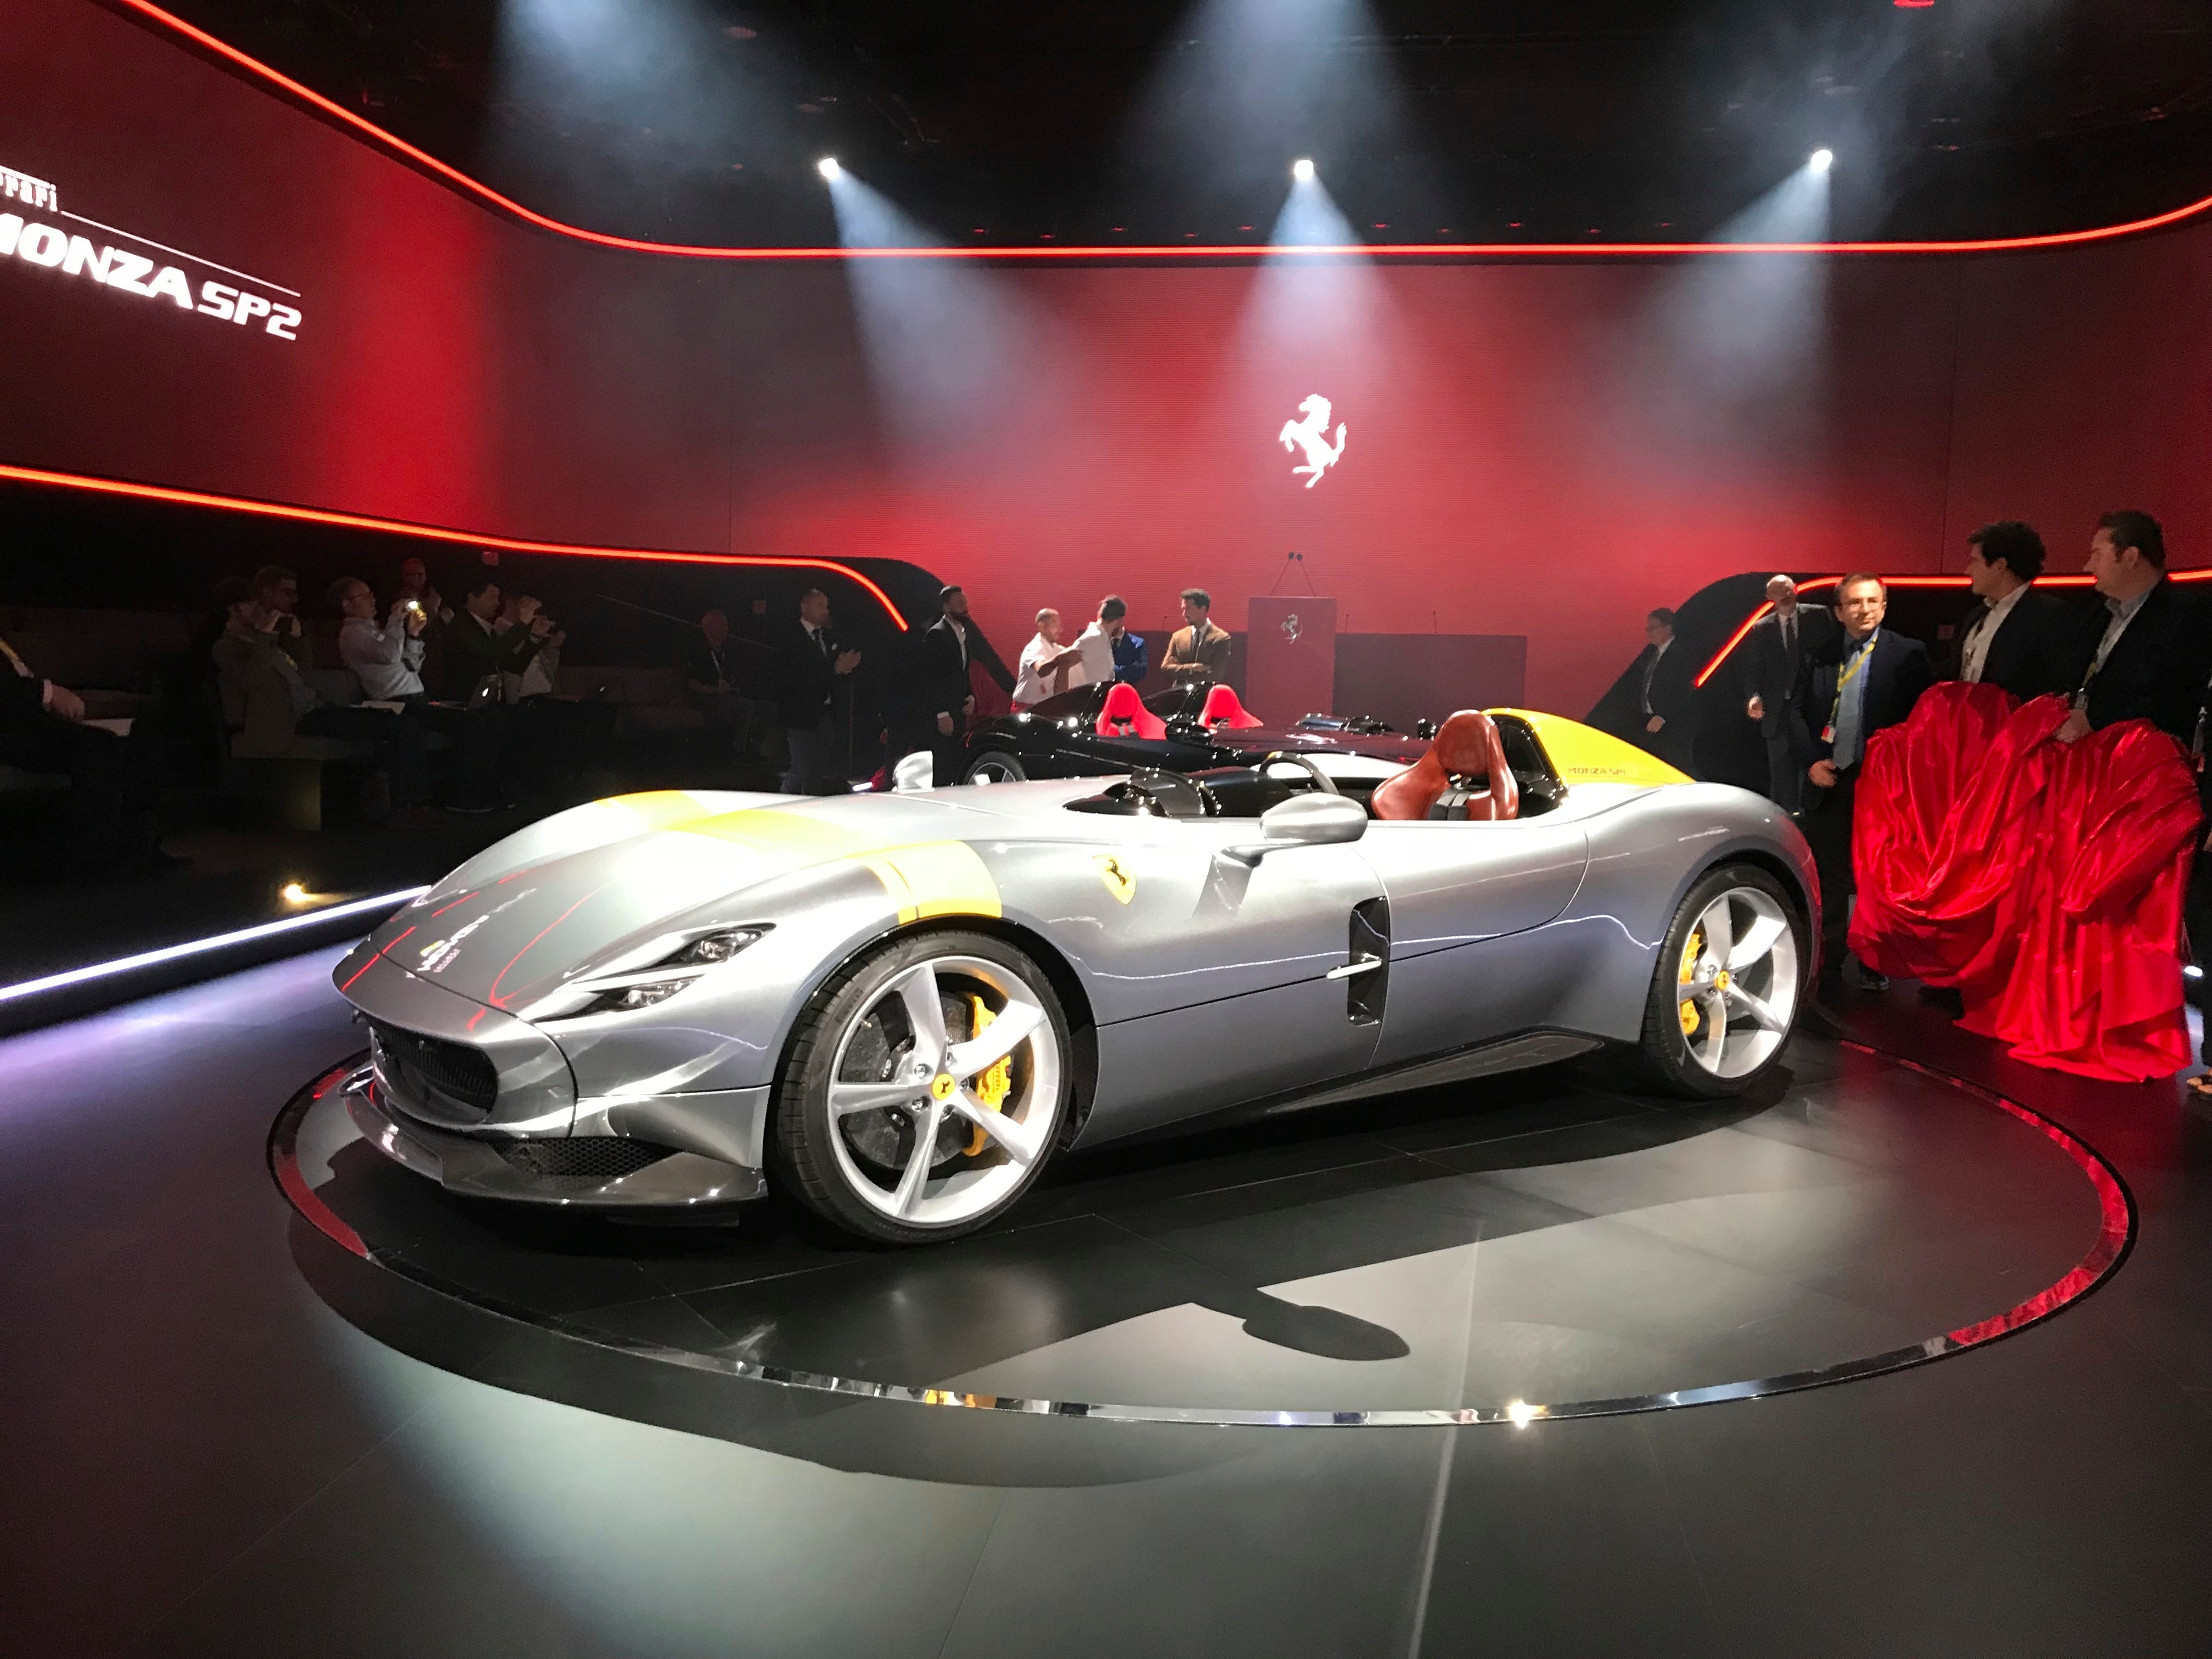 """The Ferrari Monza SP1 is displayed in Maranello, Italy, Tuesday, Sept. 18, 2018. Nicolo Boari, the head of product marketing, said Tuesday that the Ferrari Monza SP1 and SP2 are """"the most powerful ever in Ferrari history."""